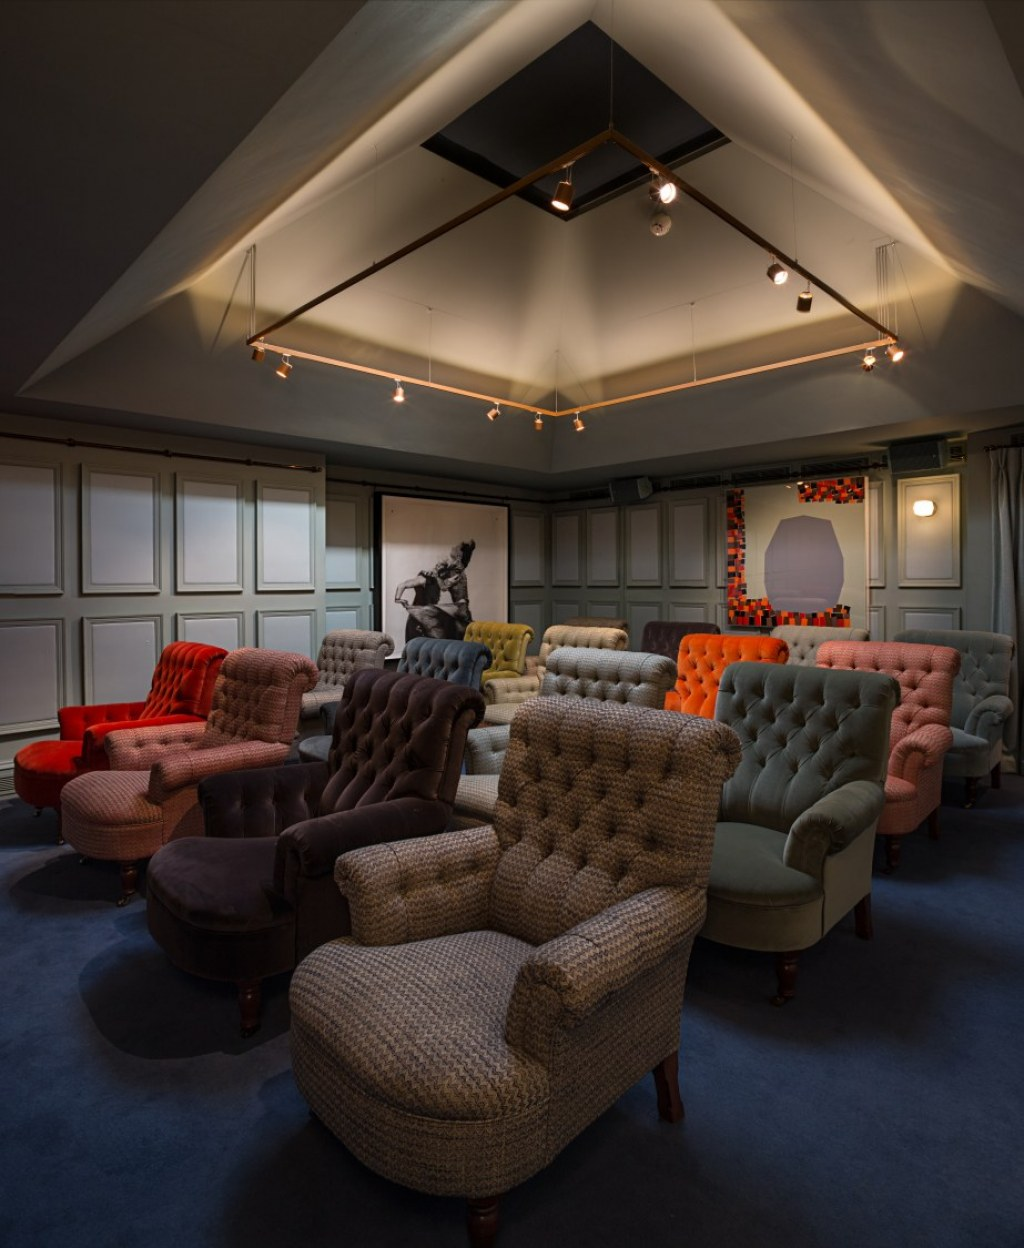 The Groucho Club / Screening Room